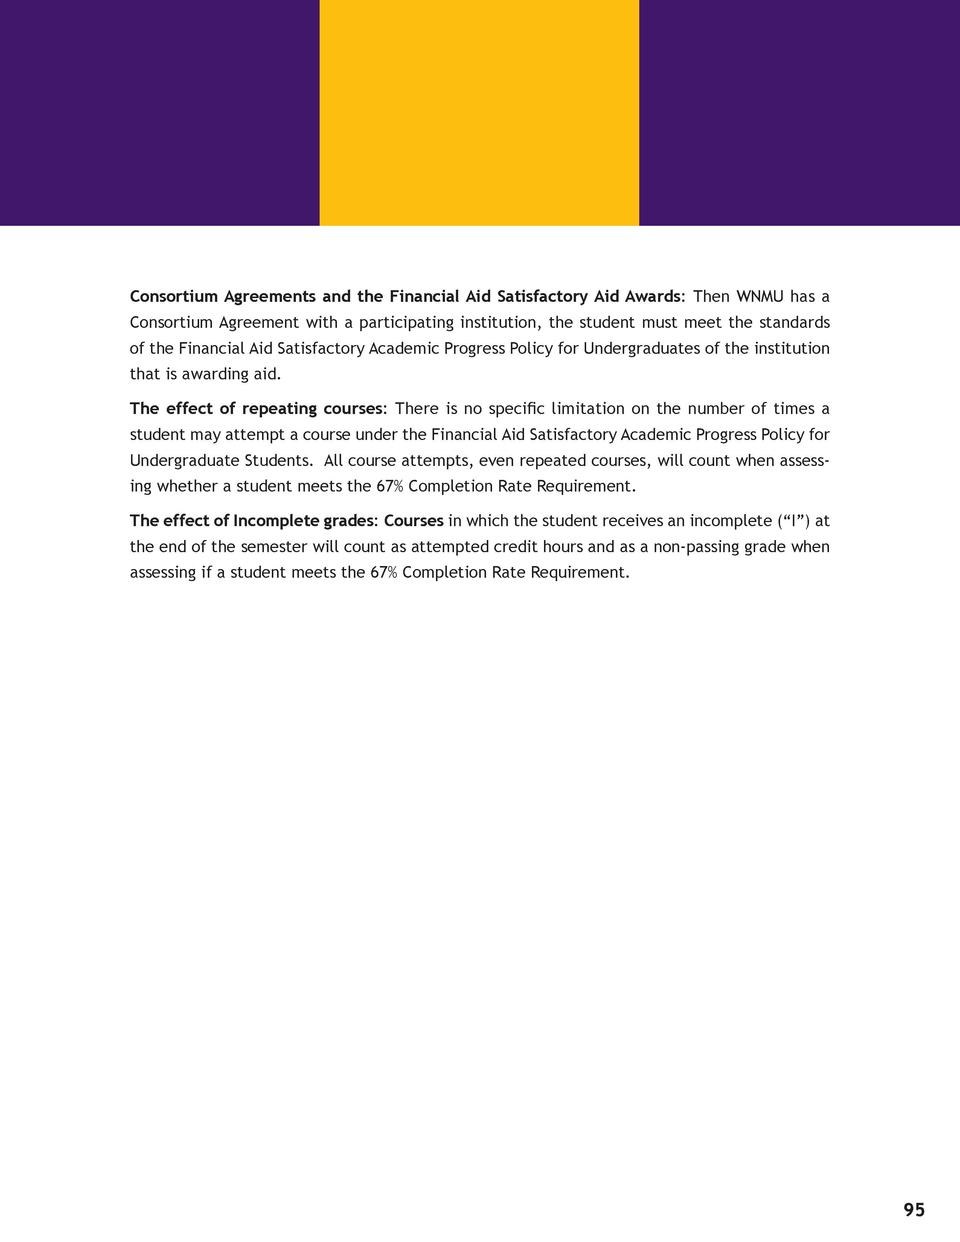 Consortium Agreements and the Financial Aid Satisfactory Aid Awards  Then WNMU has a Consortium Agreement with a participa...